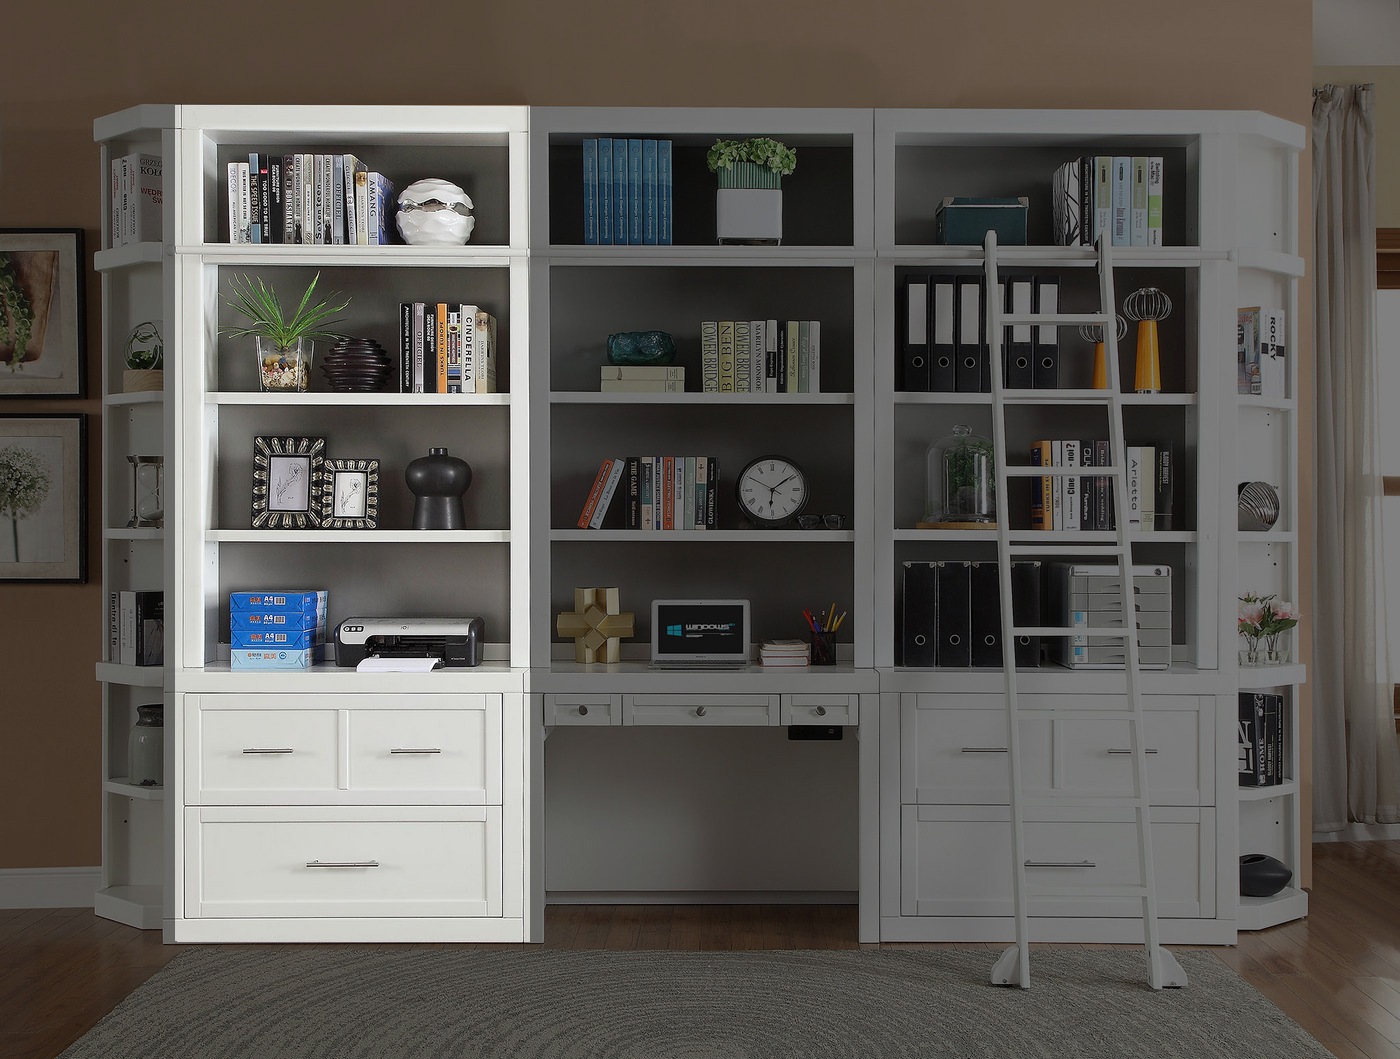 Details About Catalina Coastal Transitional Lateral File Bookcase Hutch In Cottage White